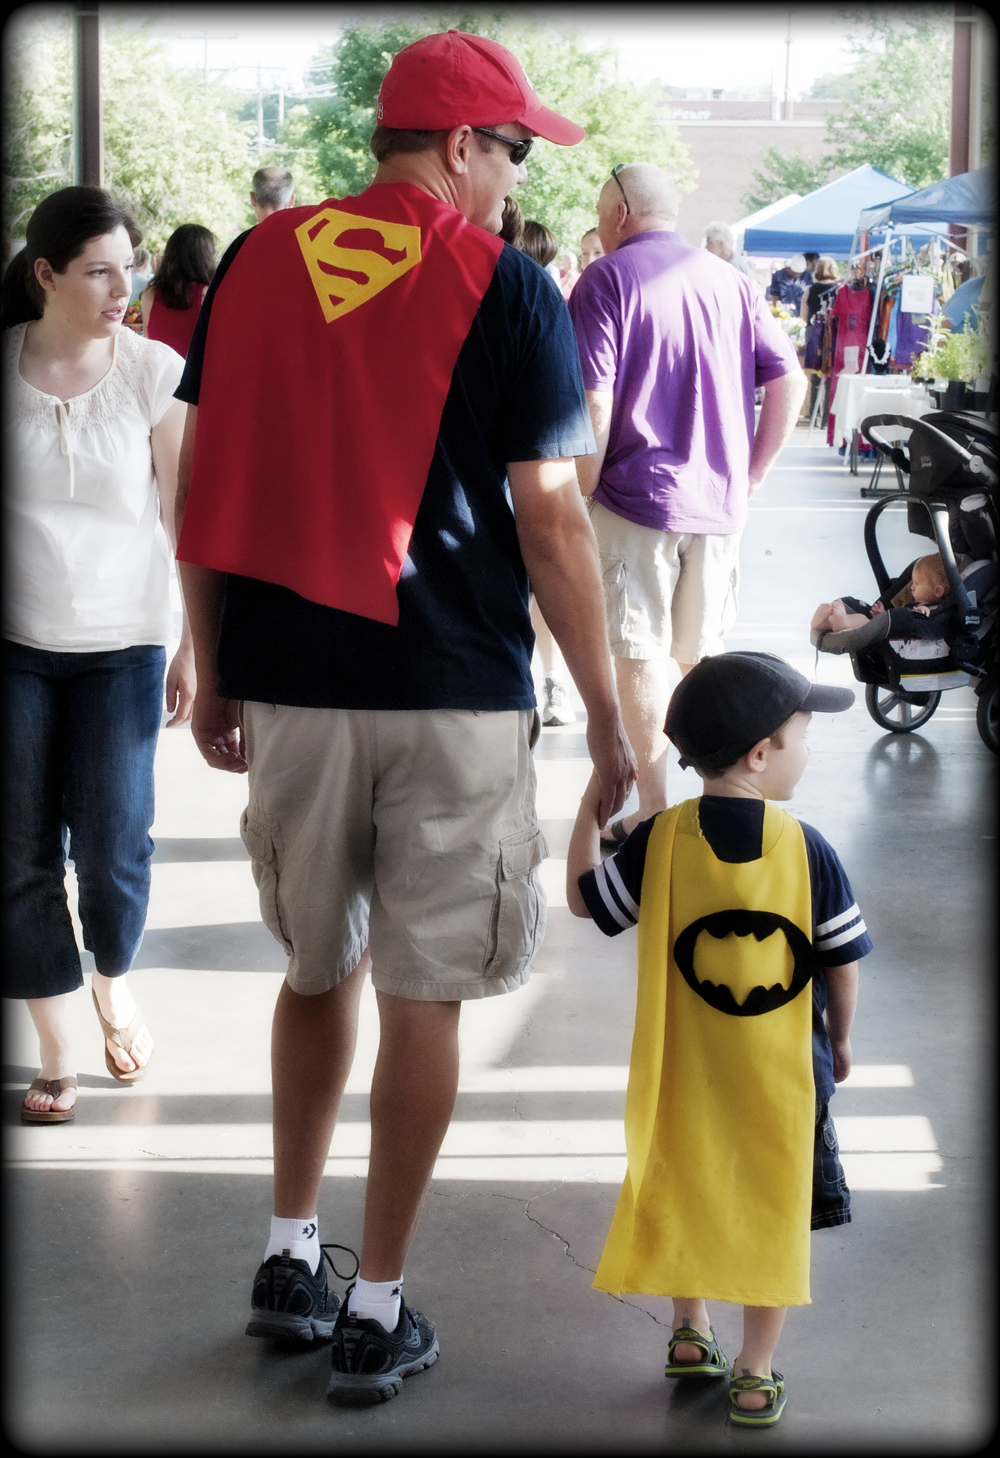 Durham_FarmersMarket_SuperMan&Batman_5262012.jpg